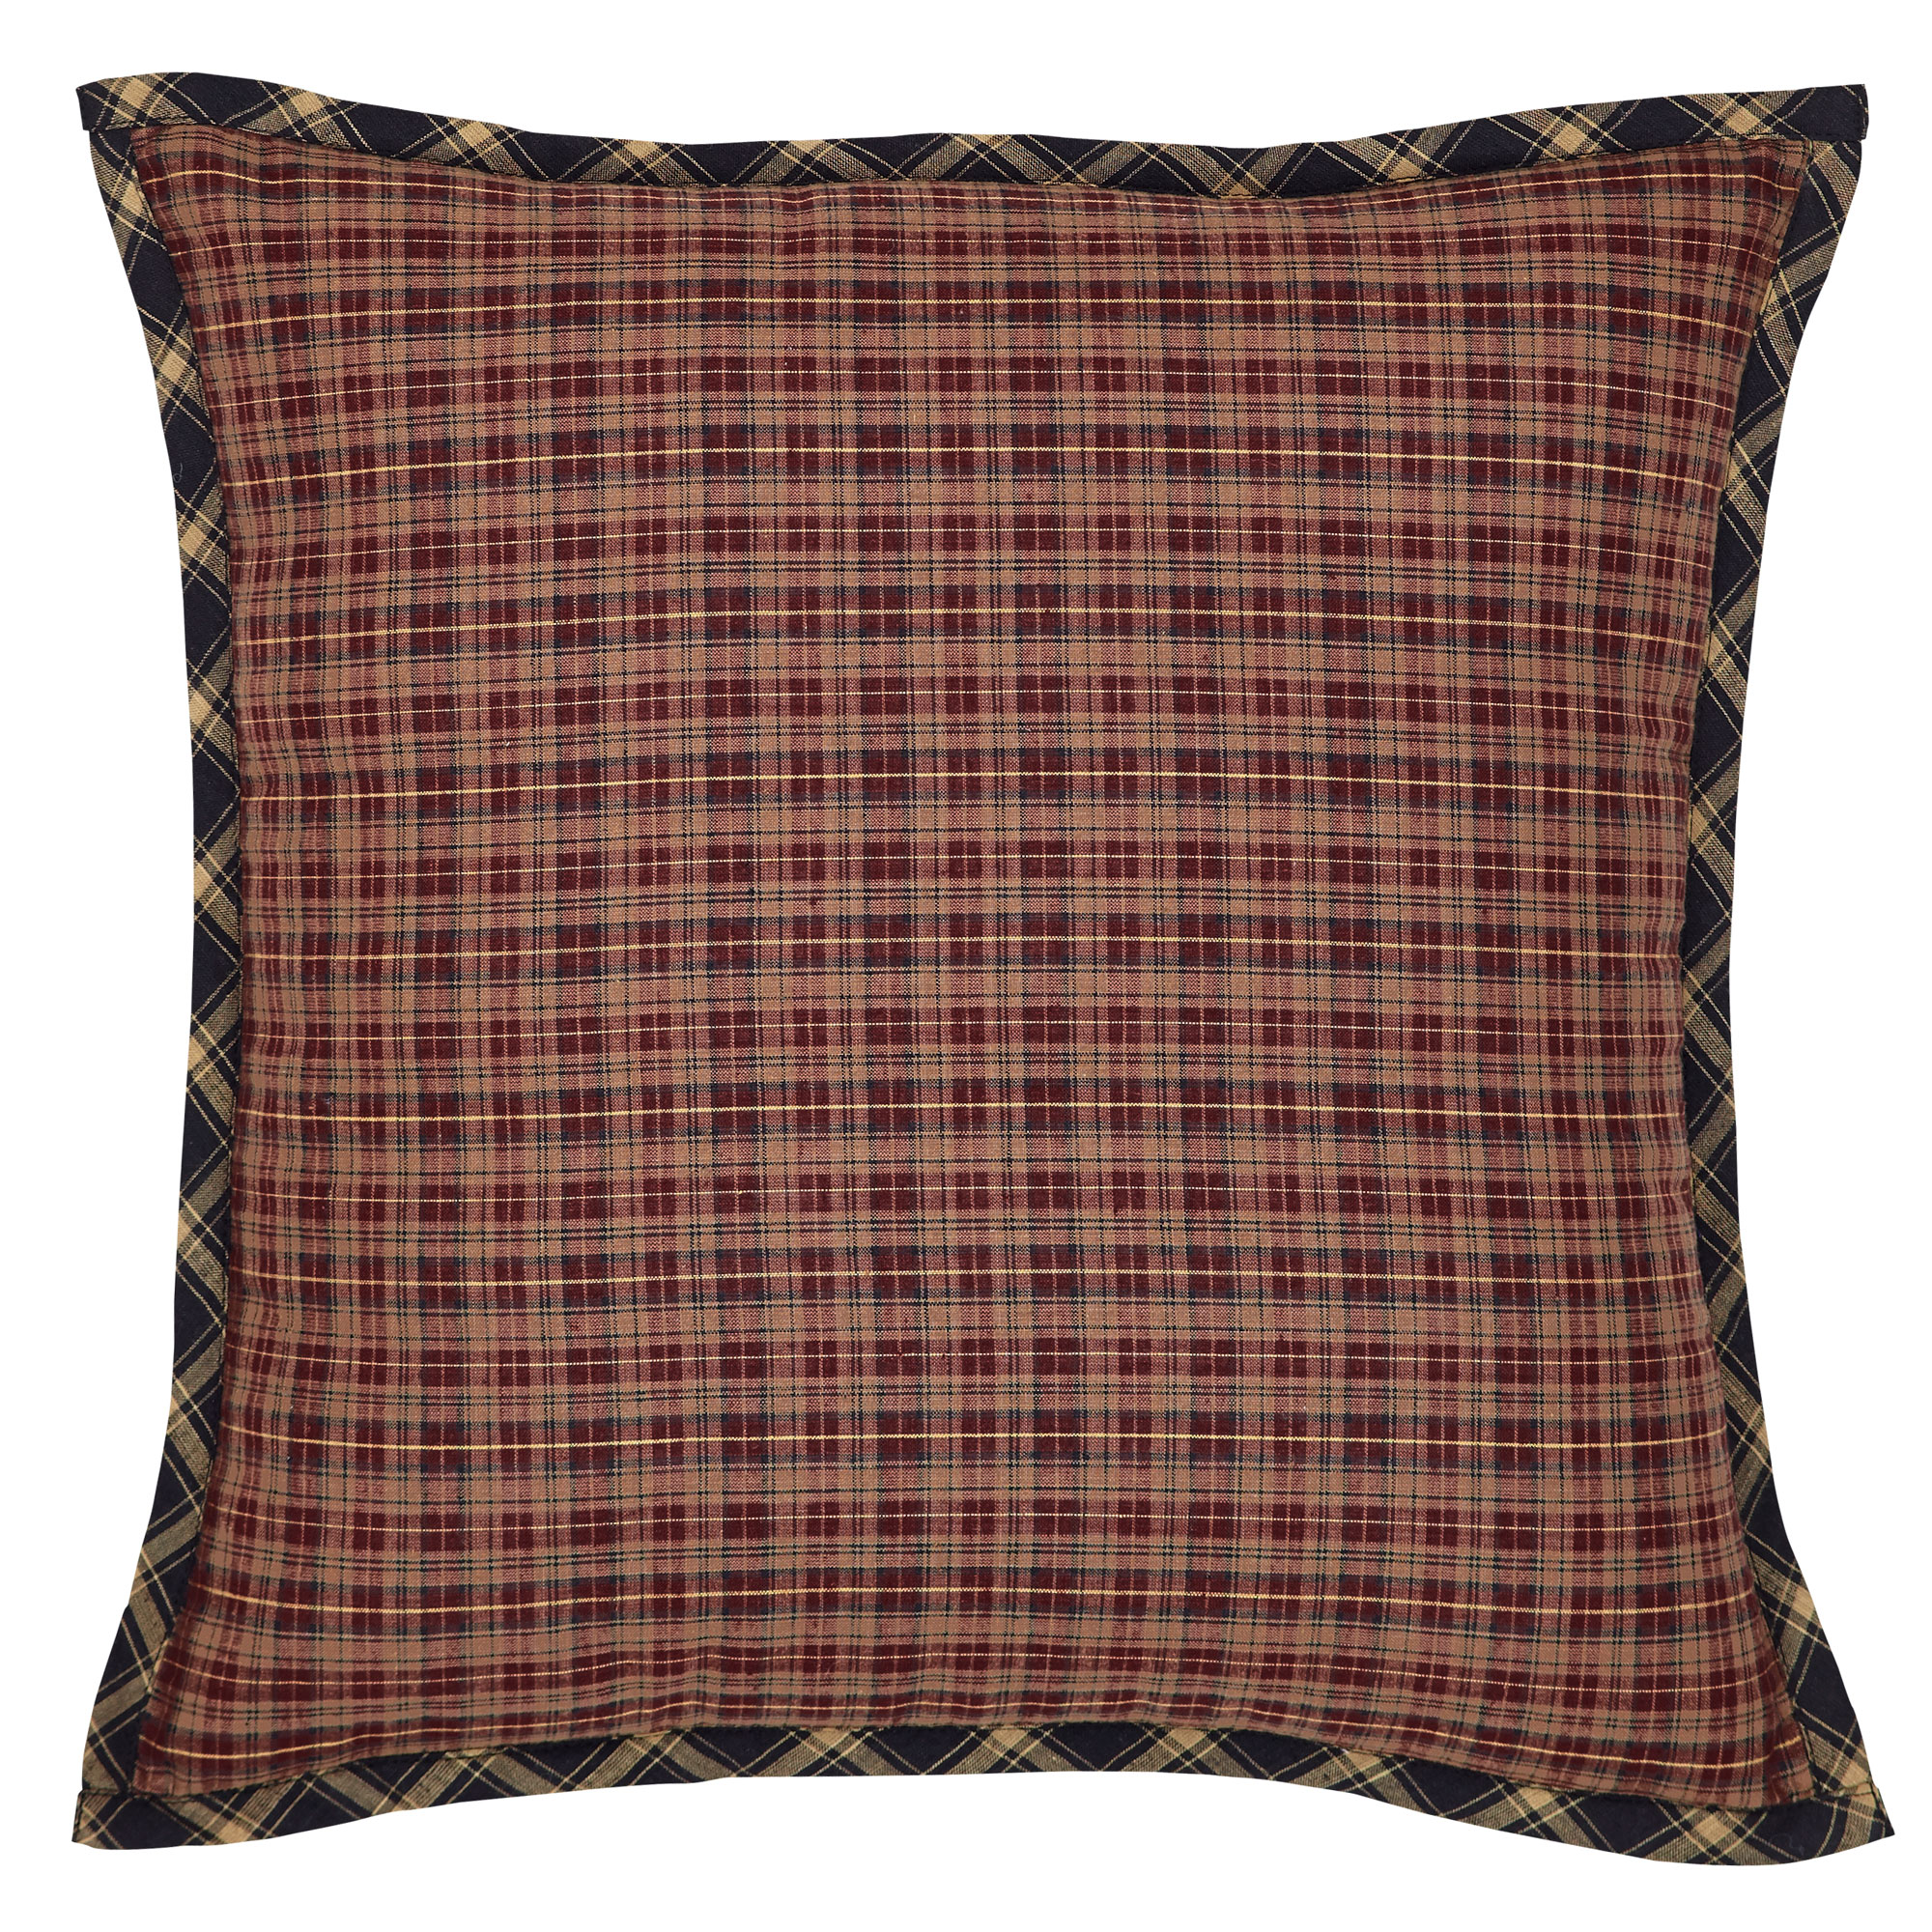 vhc-17931-beckham-fabric-pillow-cover-lrg